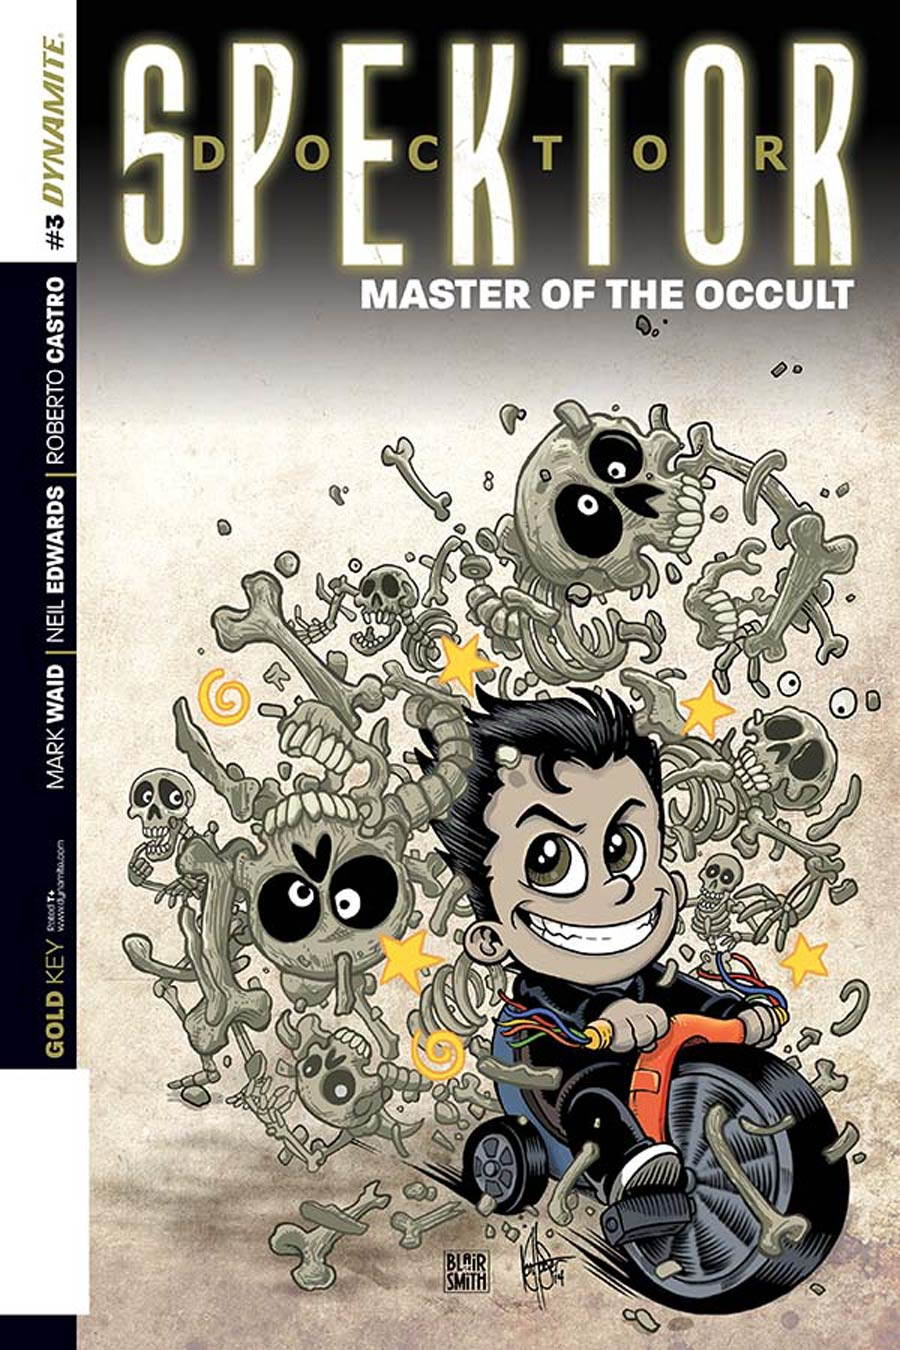 Doctor Spektor Master Of The Occult #3 Cover E Incentive Ken Haeser Lil Spektor Master Of The Occult Variant Cover